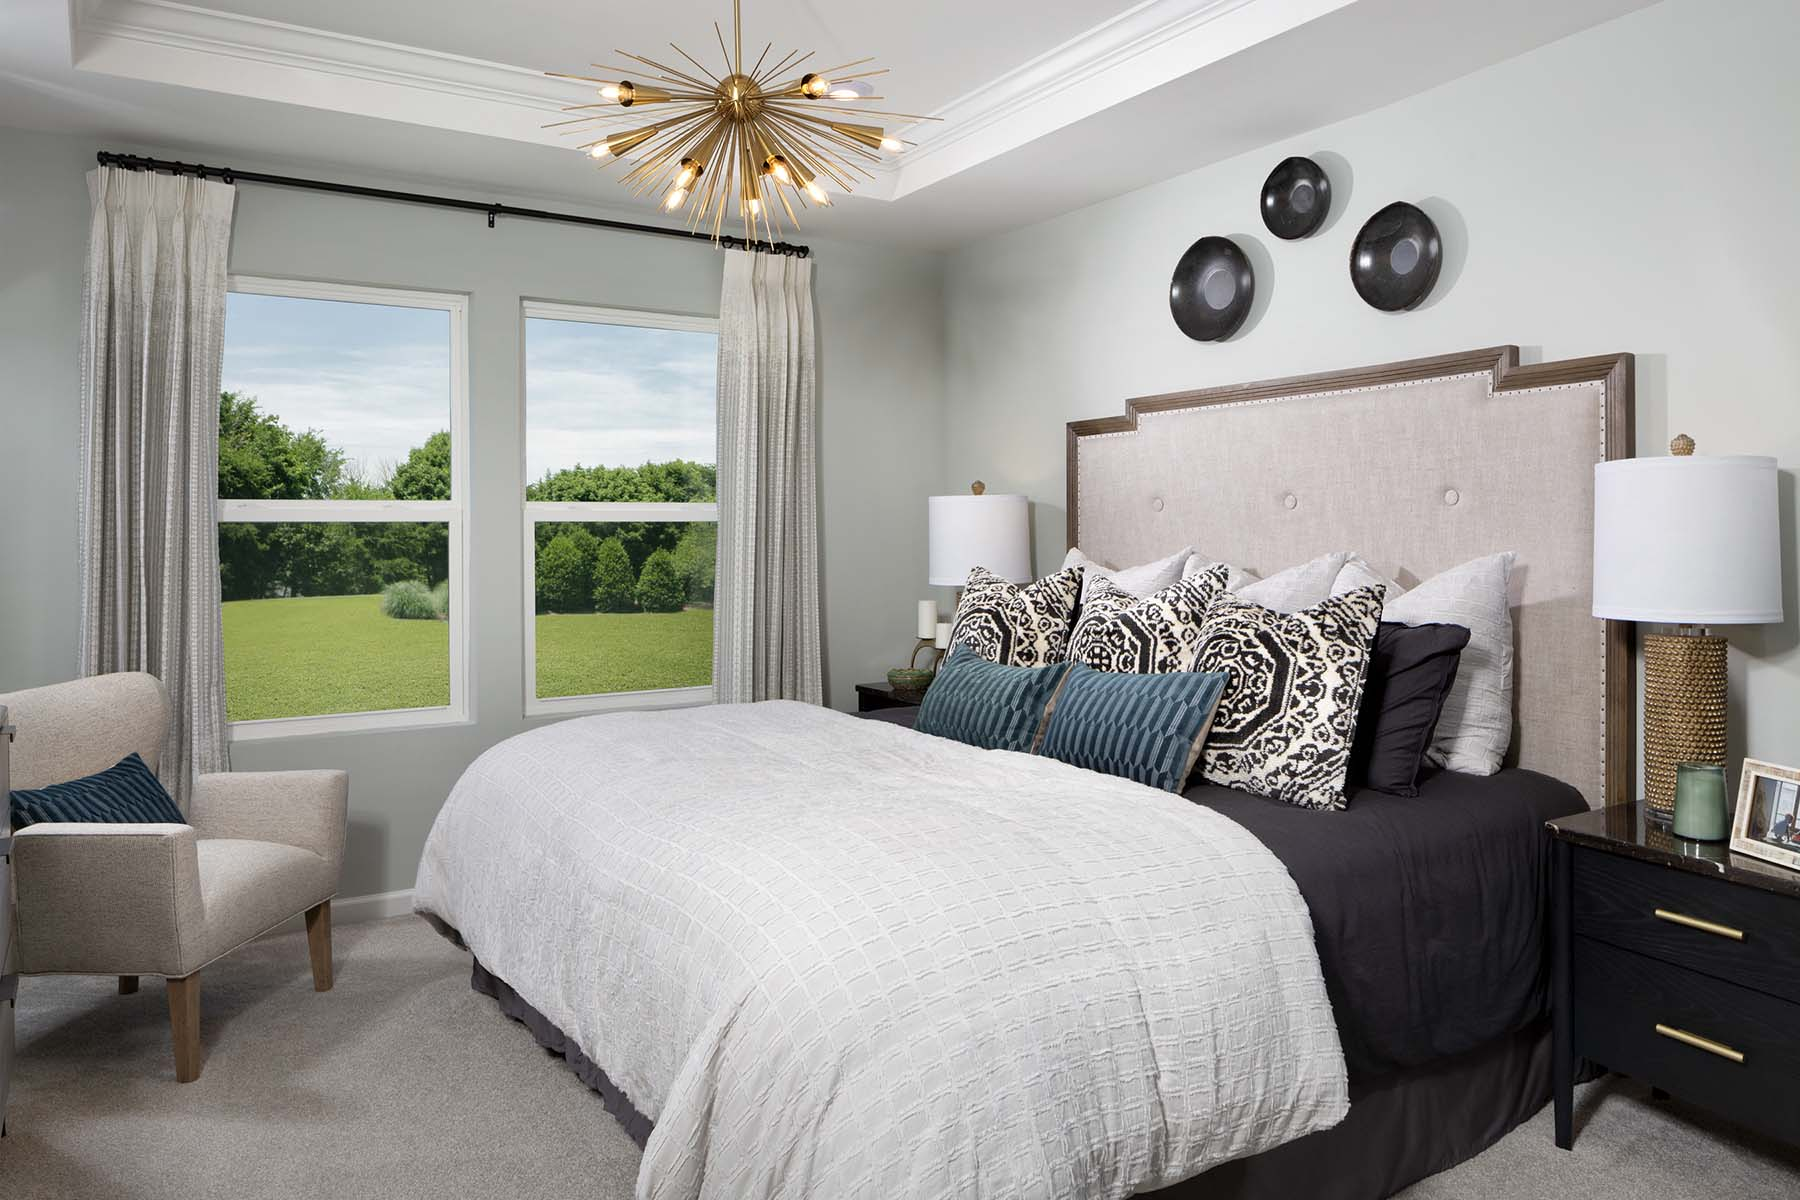 Rodric Plan Bedroom at Galloway Park in Charlotte North Carolina by Mattamy Homes